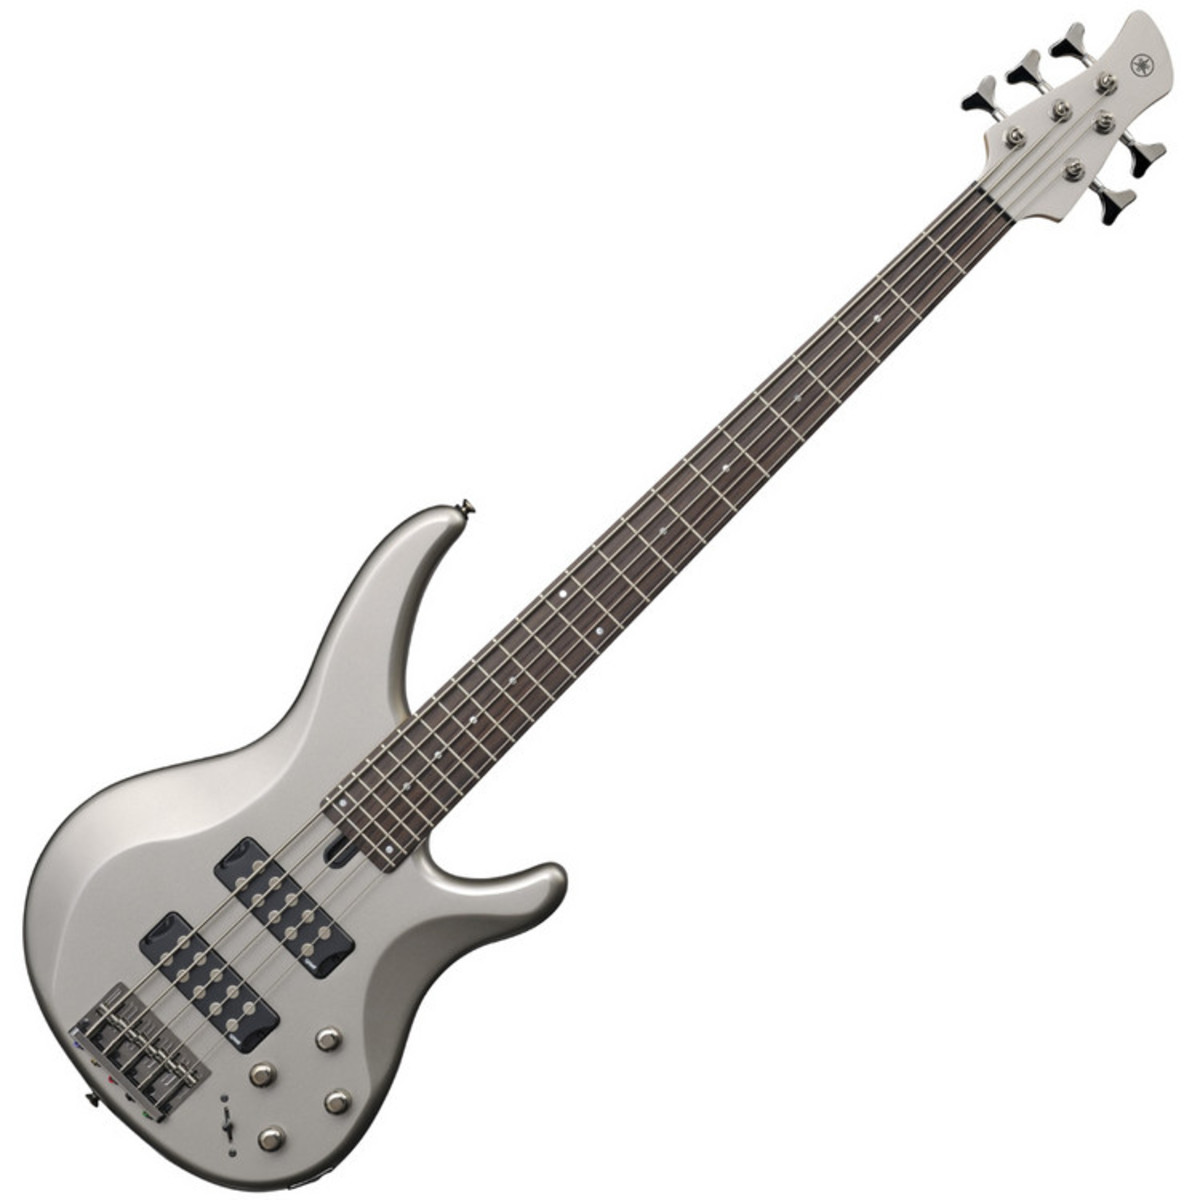 Yamaha Trbx String Bass Guitar